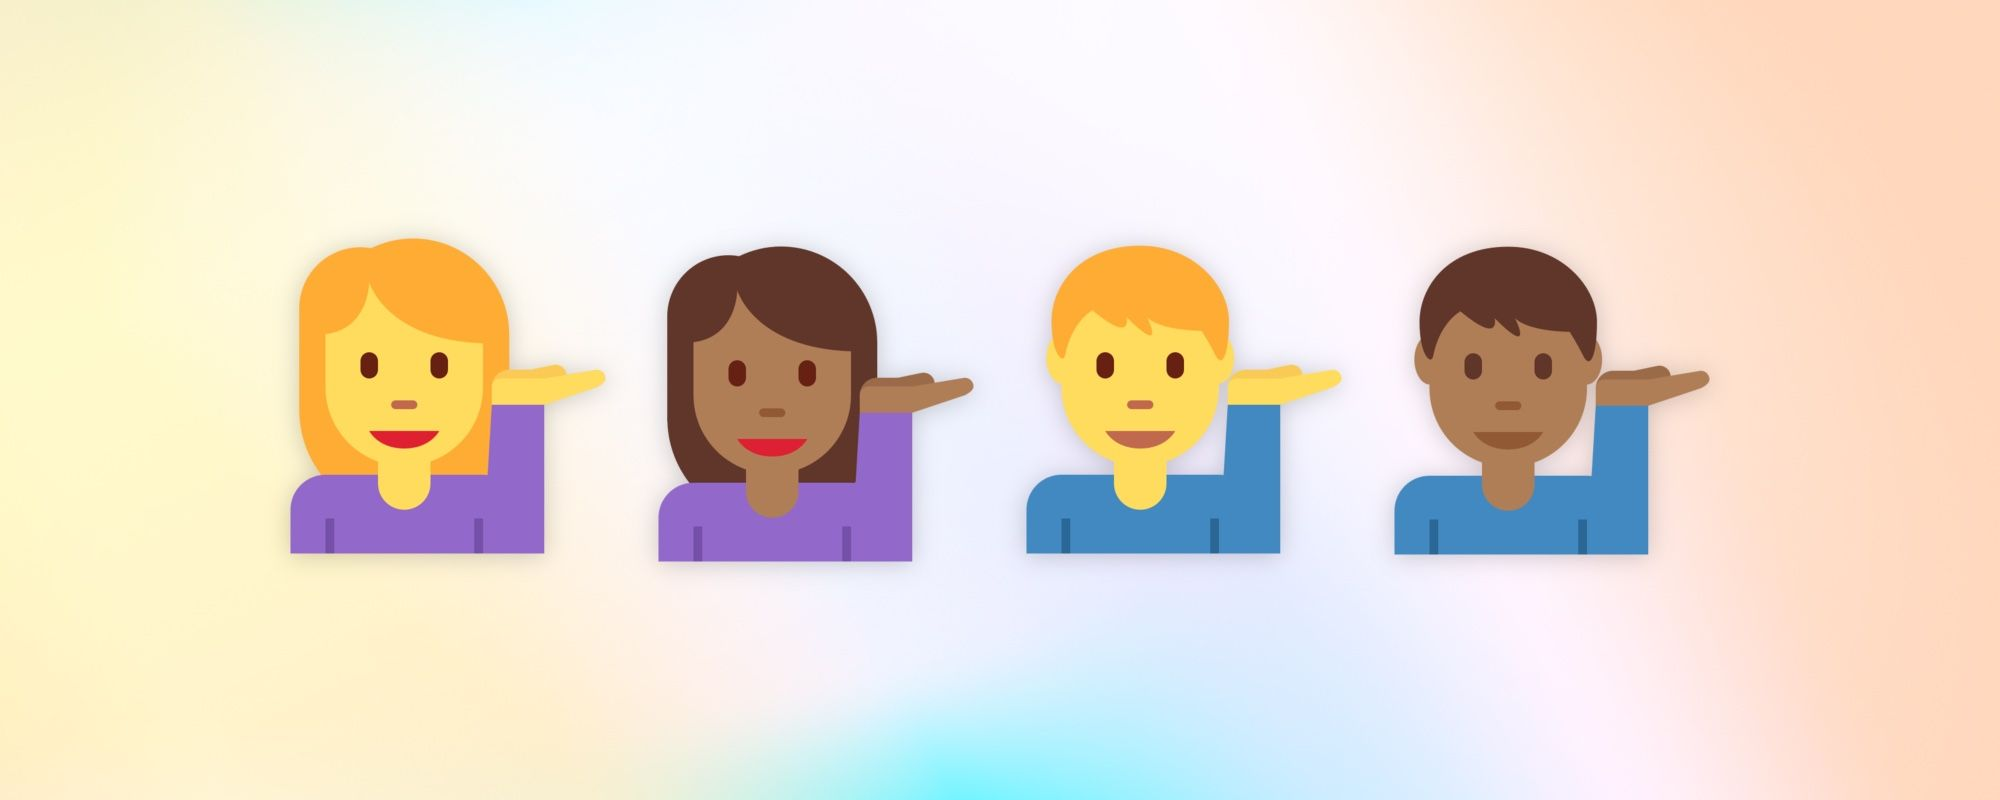 Twitter Now Counts Every Emoji as Equal